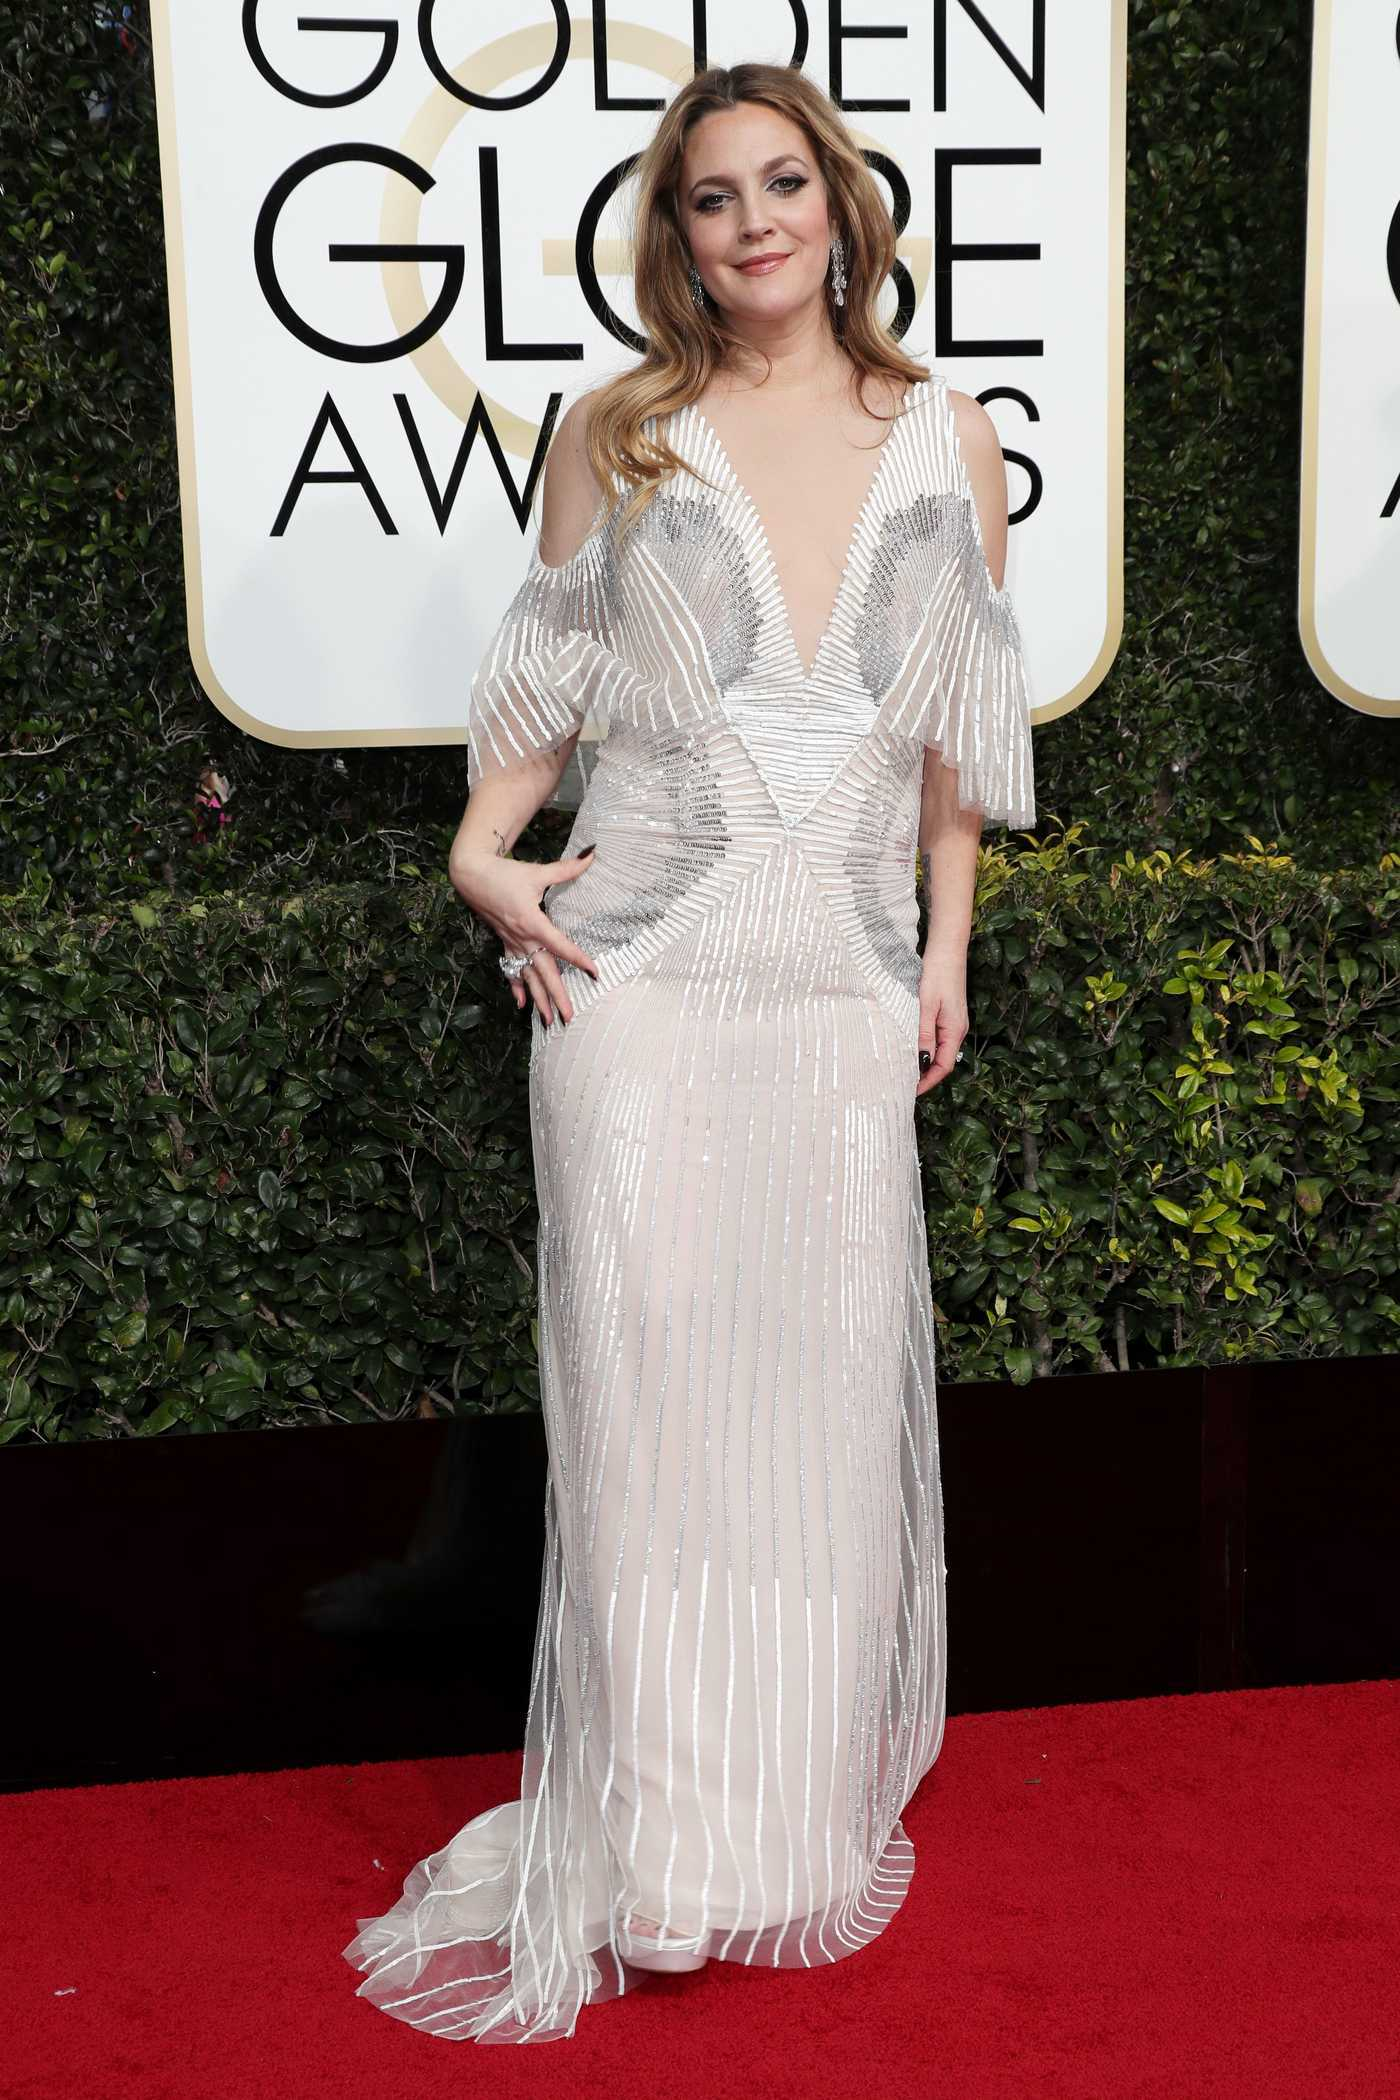 Drew Barrymore at the 74th Annual Golden Globe Awards in Beverly Hills 01/08/2017